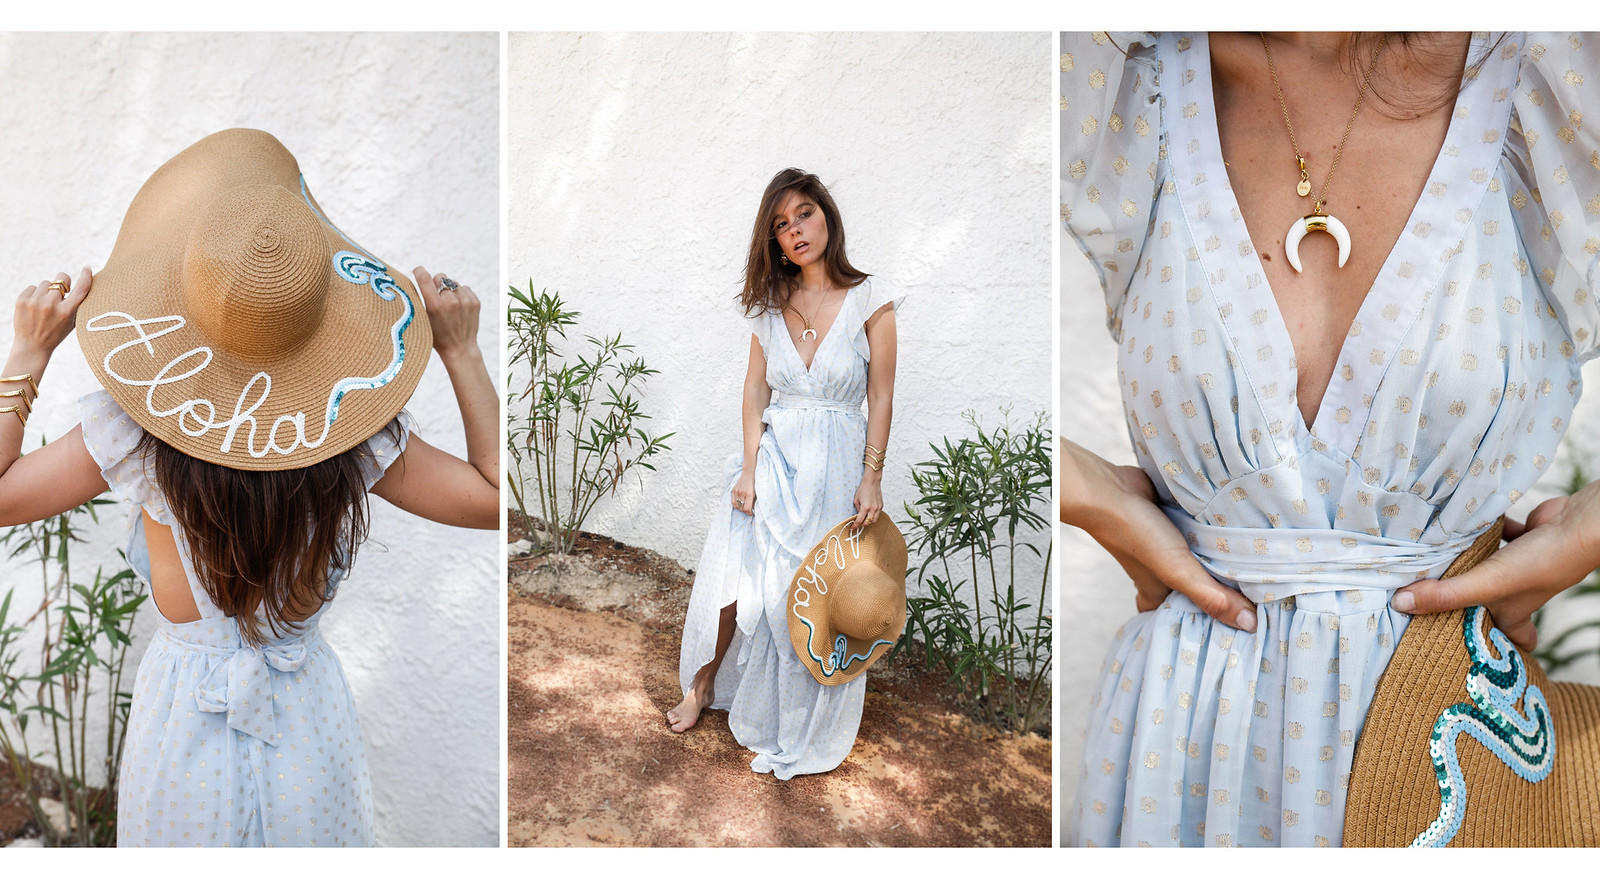 012_golden_dots_lunares_dorados_vestido_azul_boho_deby_debo_long_dress_theguestgirl_influencer_barcelona_style_content_creator_fashion_spain